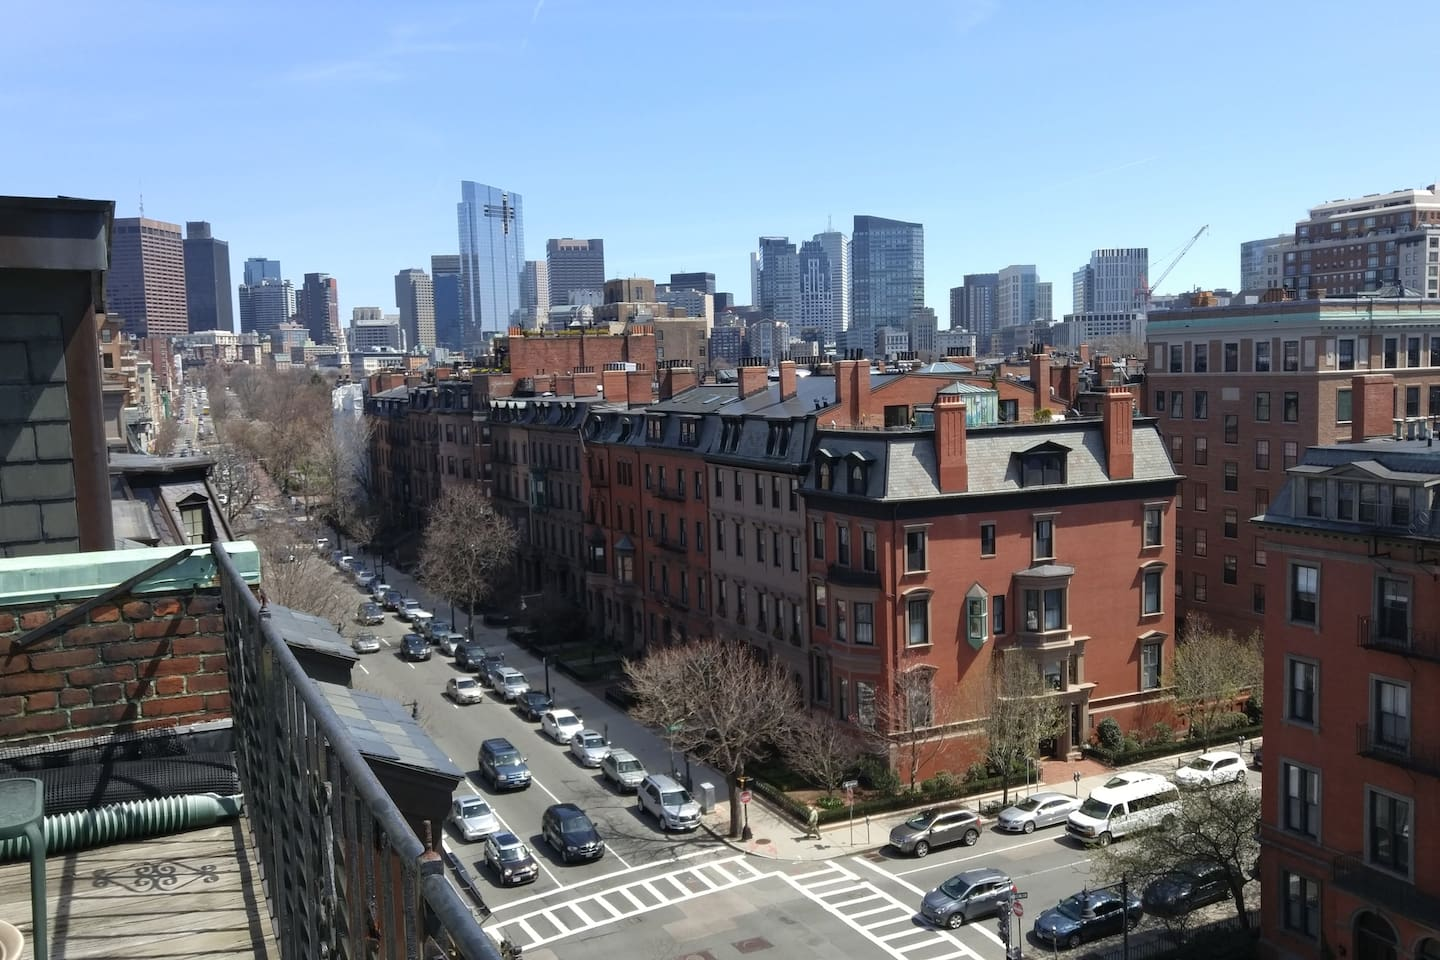 City views from the private front balcony overlooking Beacon Street.